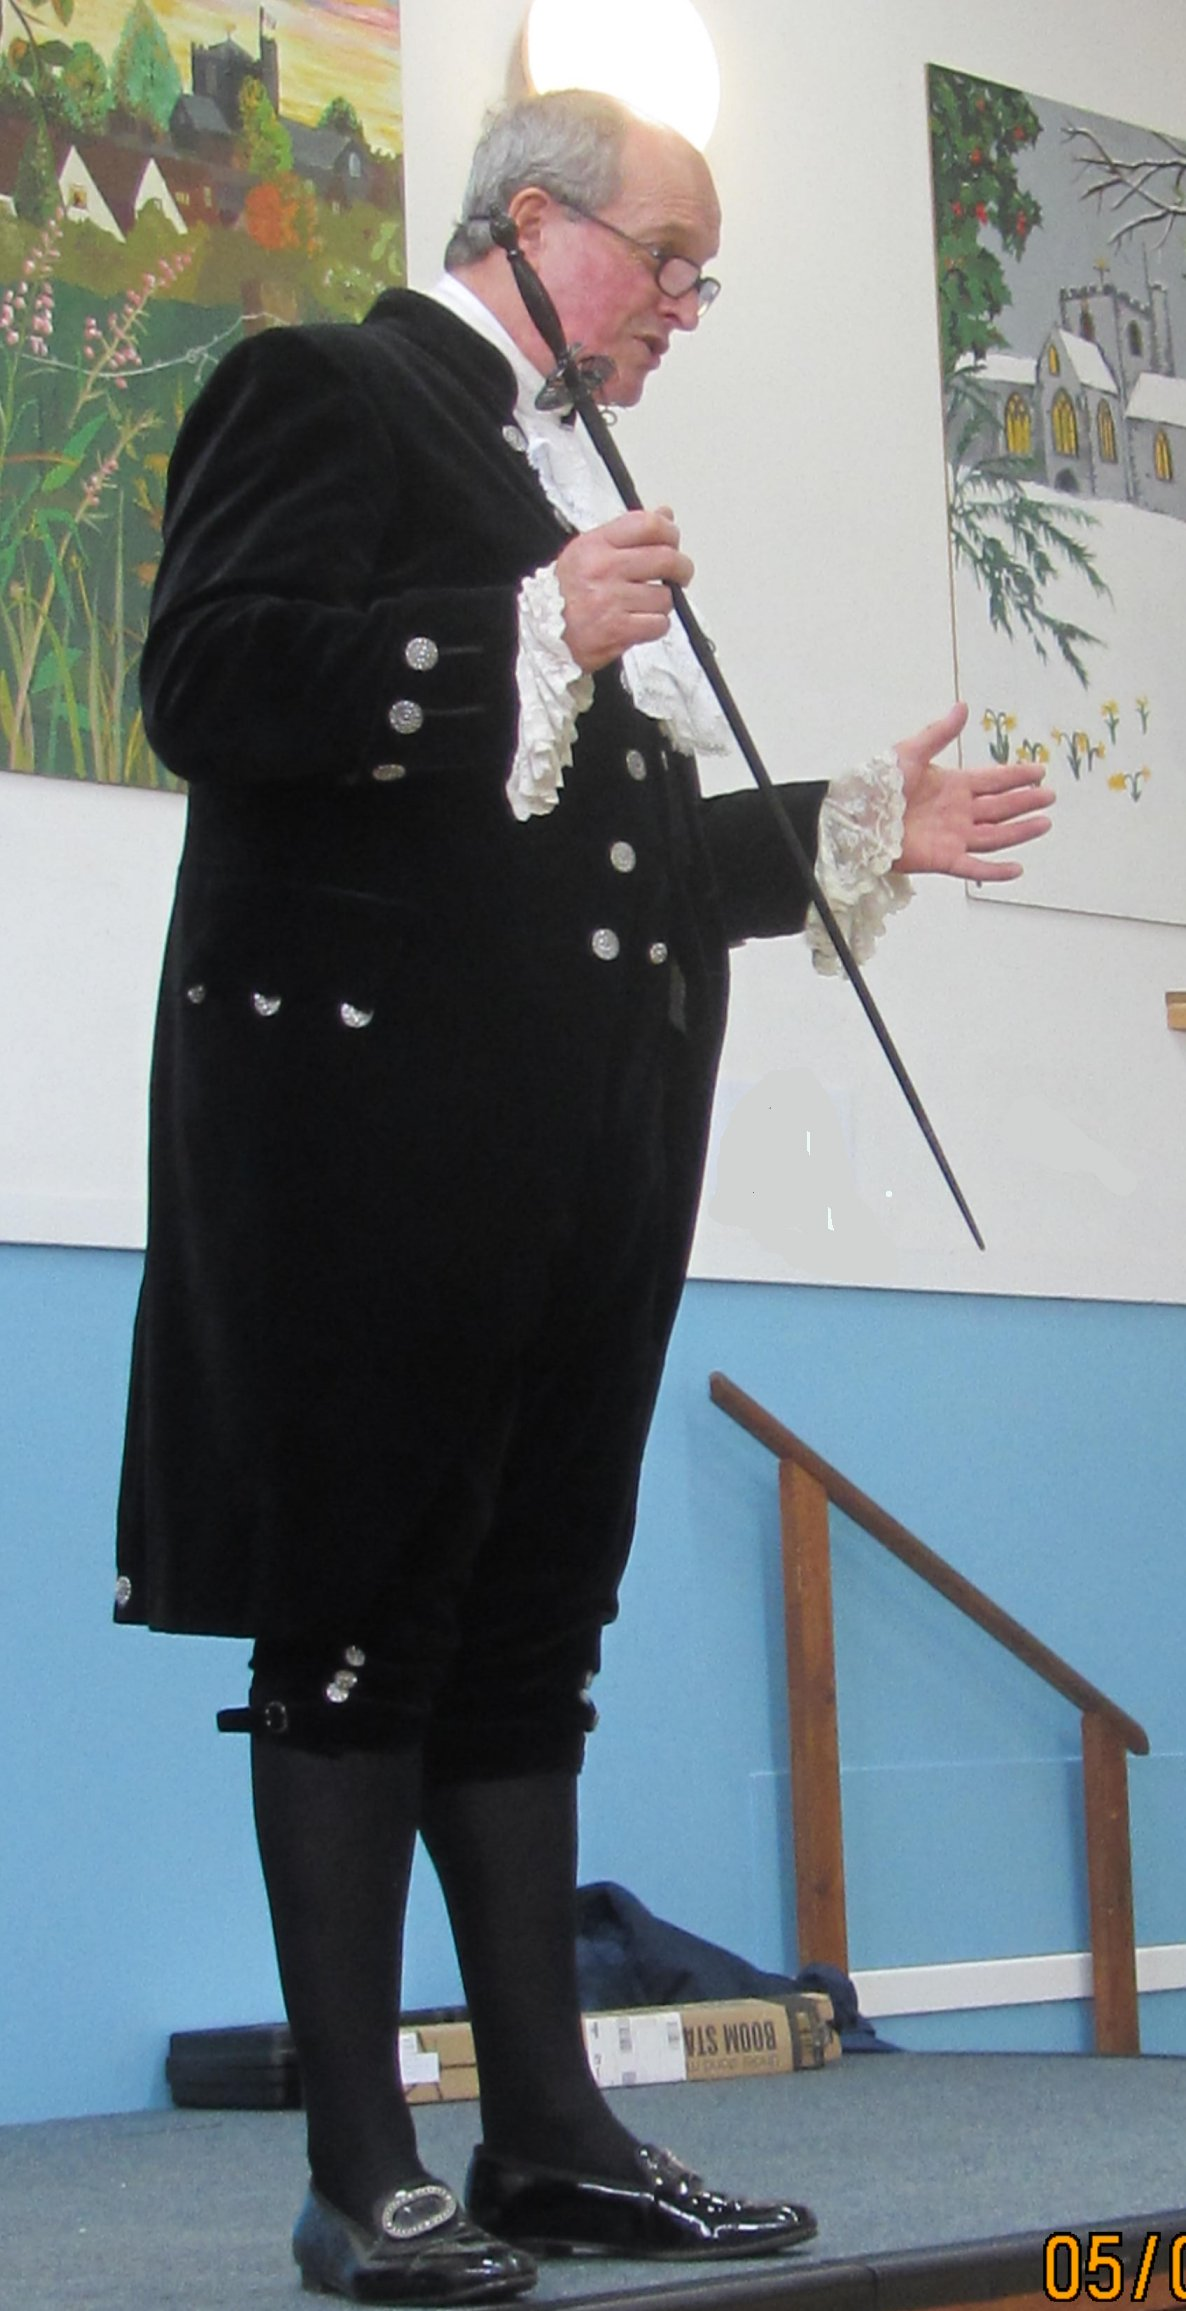 The High Sheriff of Herefordshire